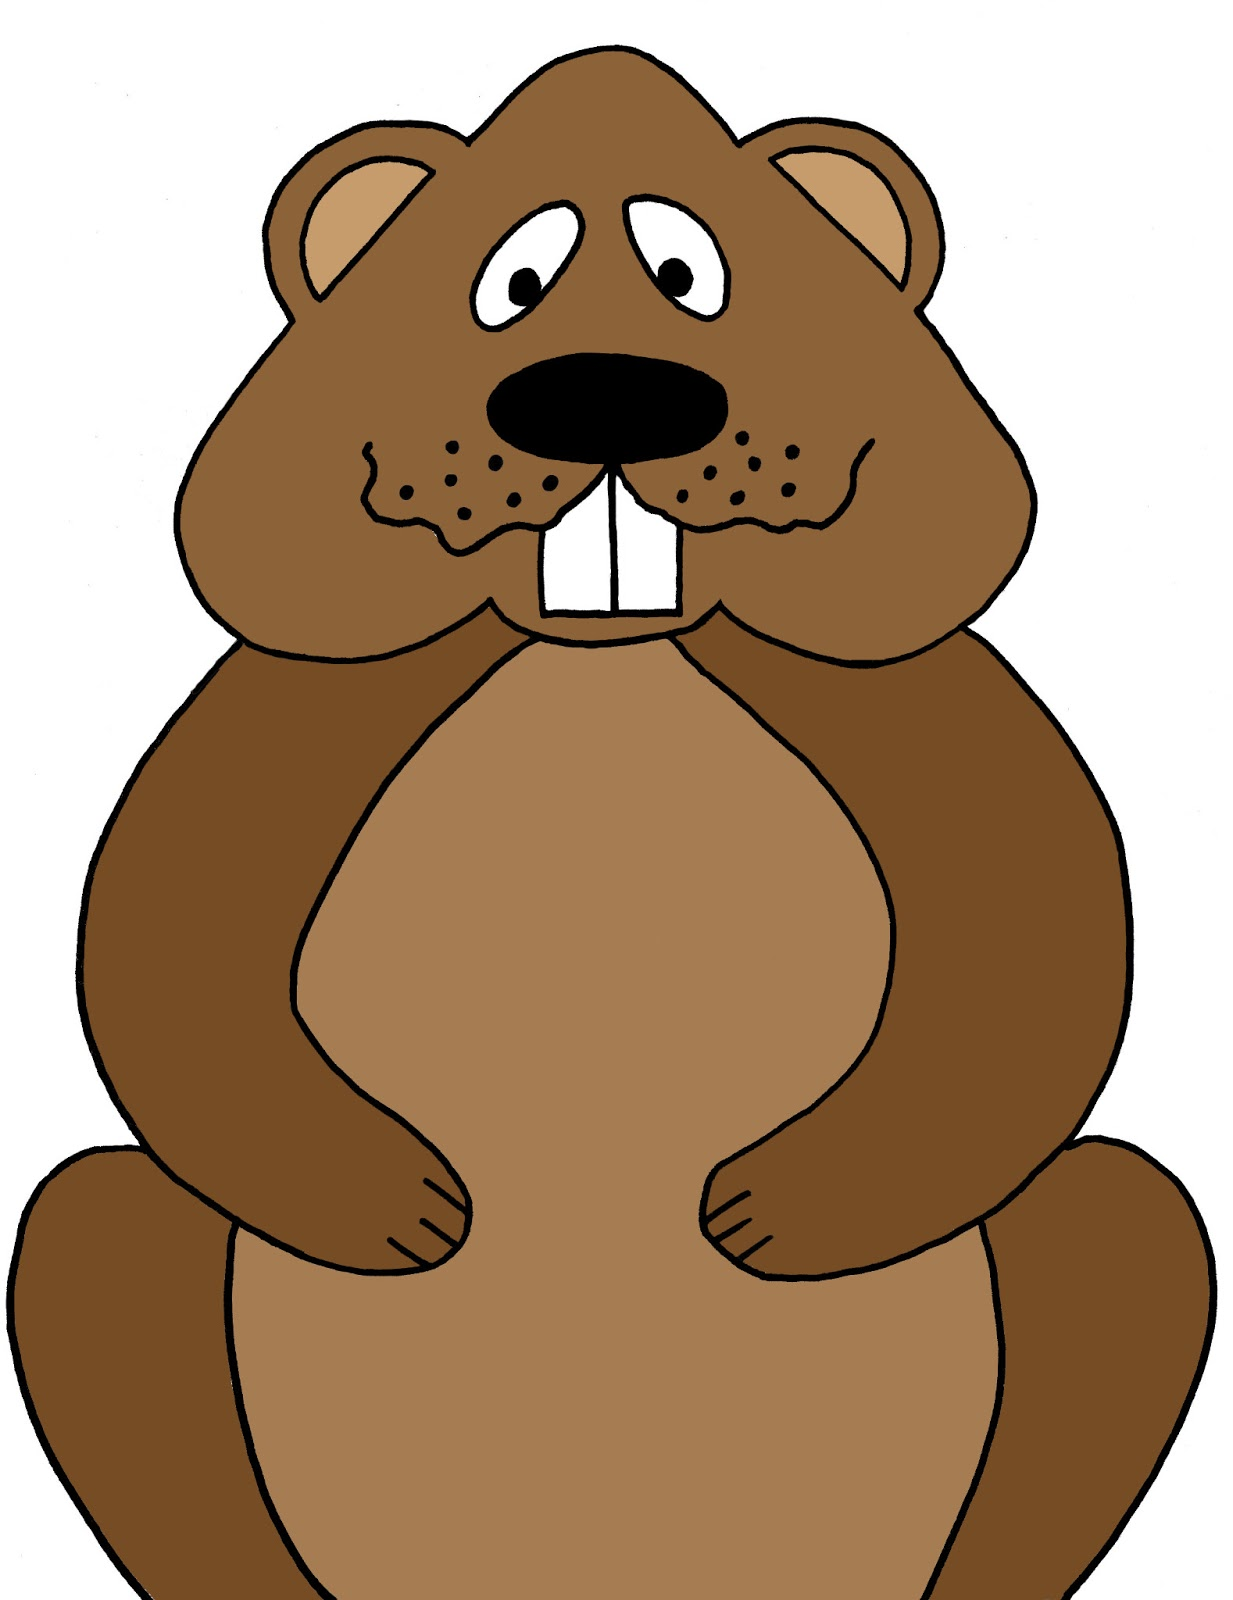 Woodchuck Clip Art Illustrations - Clipart Guide